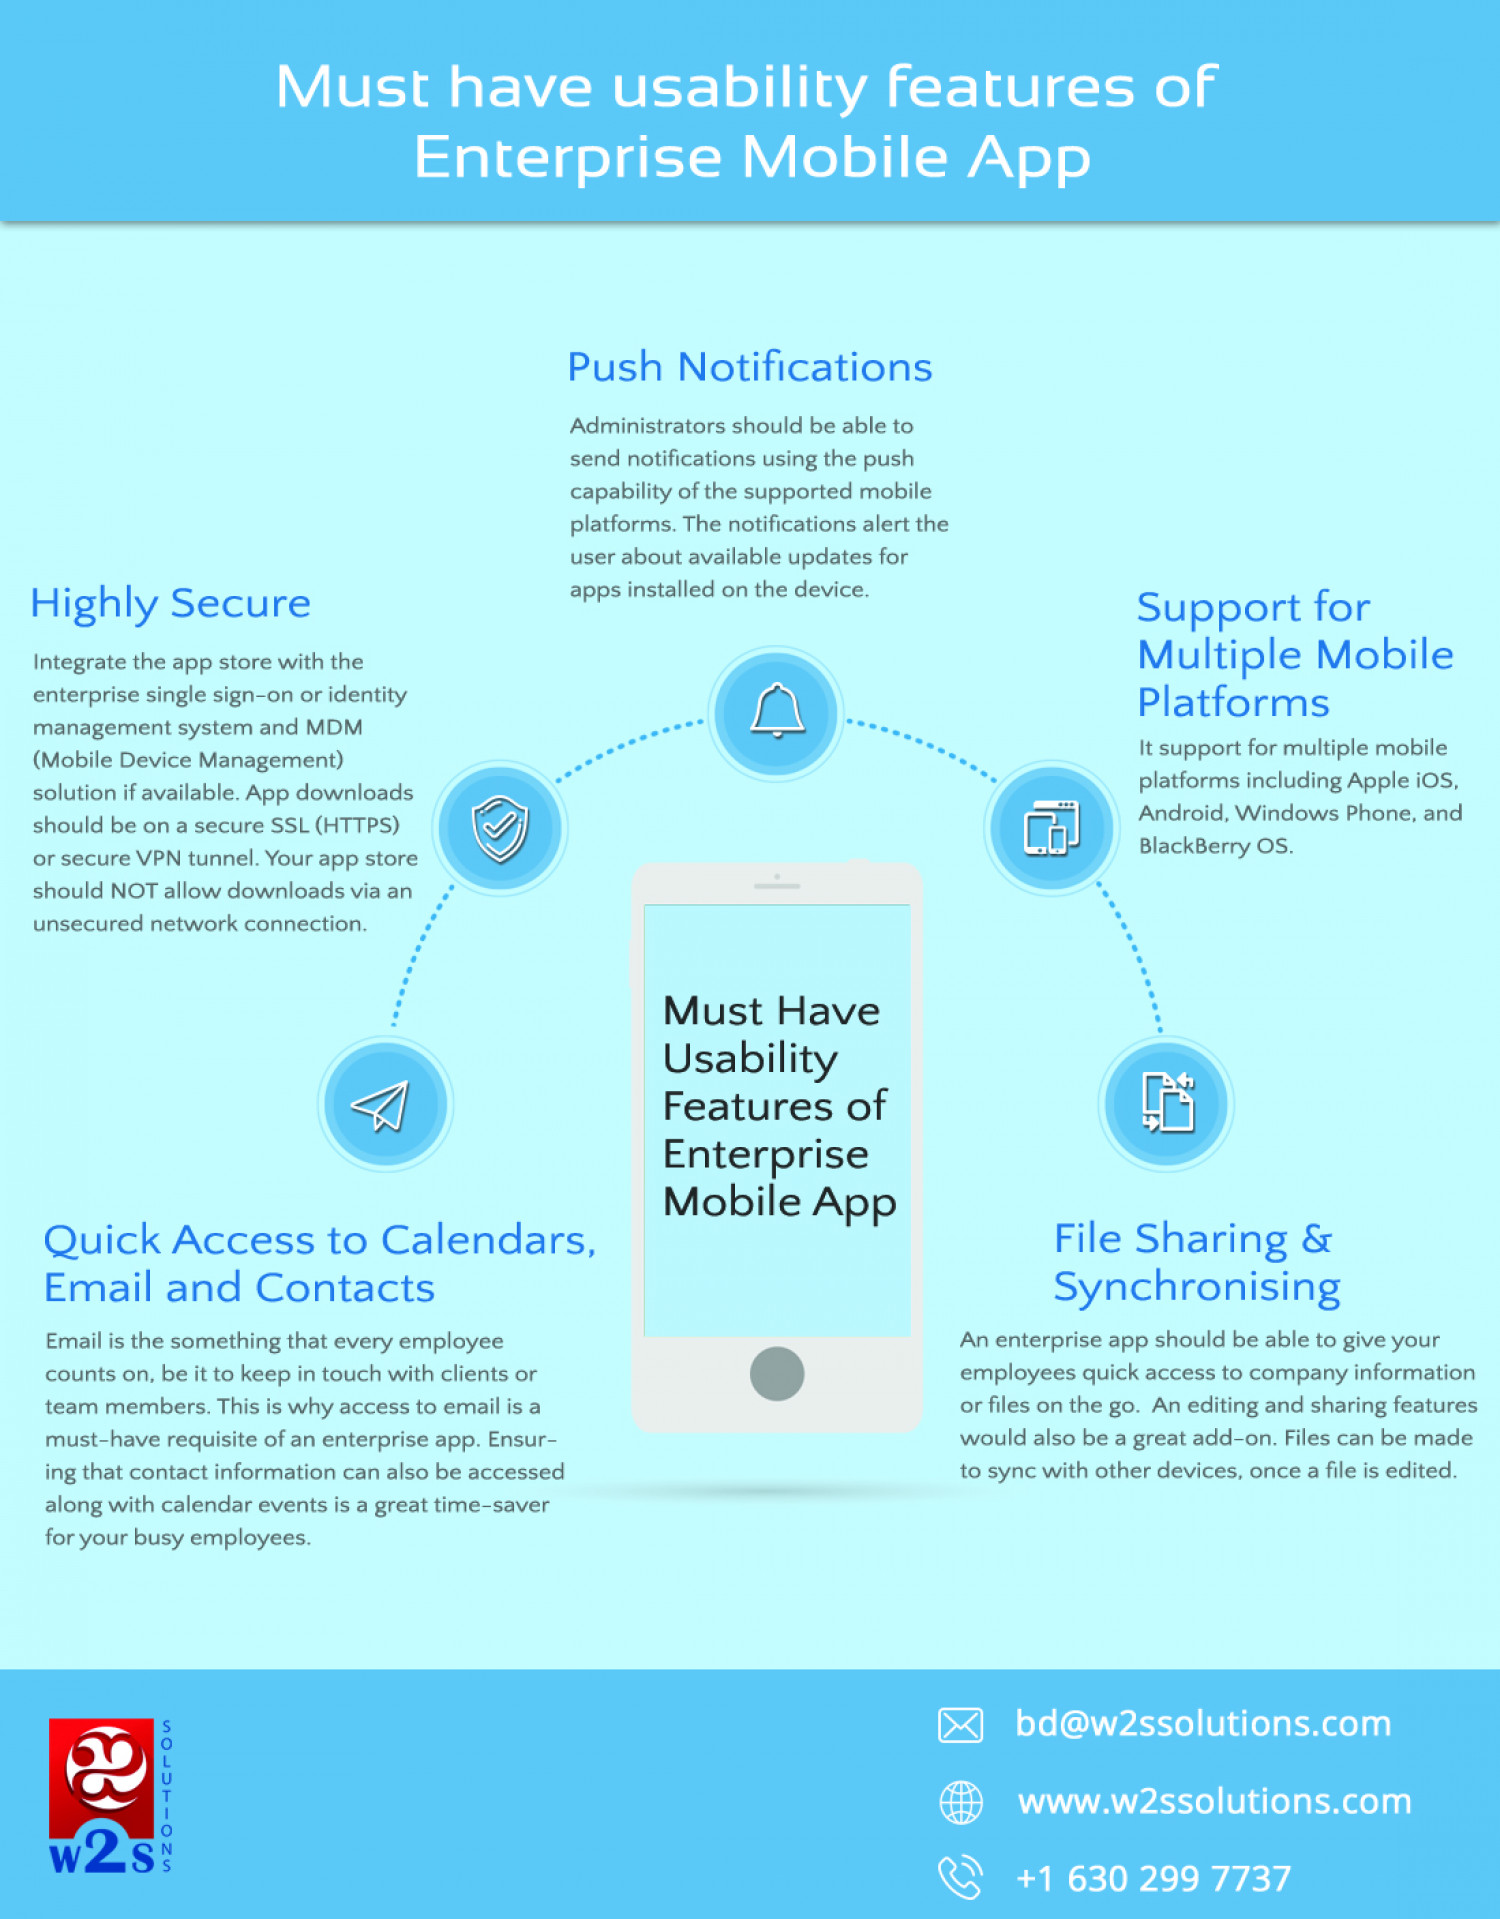 Features of an Enterprise Mobile Apps-W2S Solutions Infographic